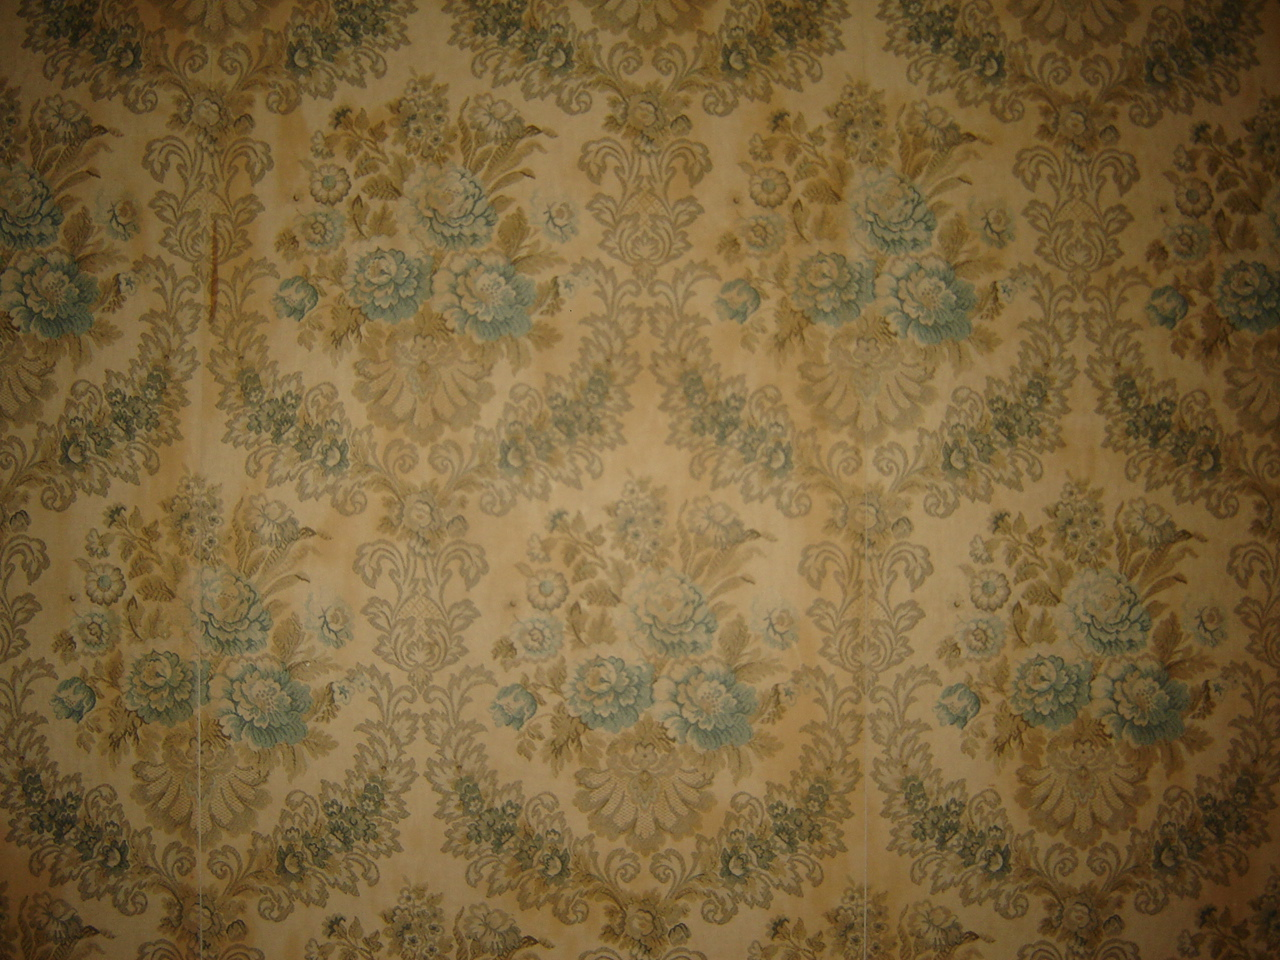 Wallpaper antique 2017 grasscloth wallpaper for Retro wallpaper